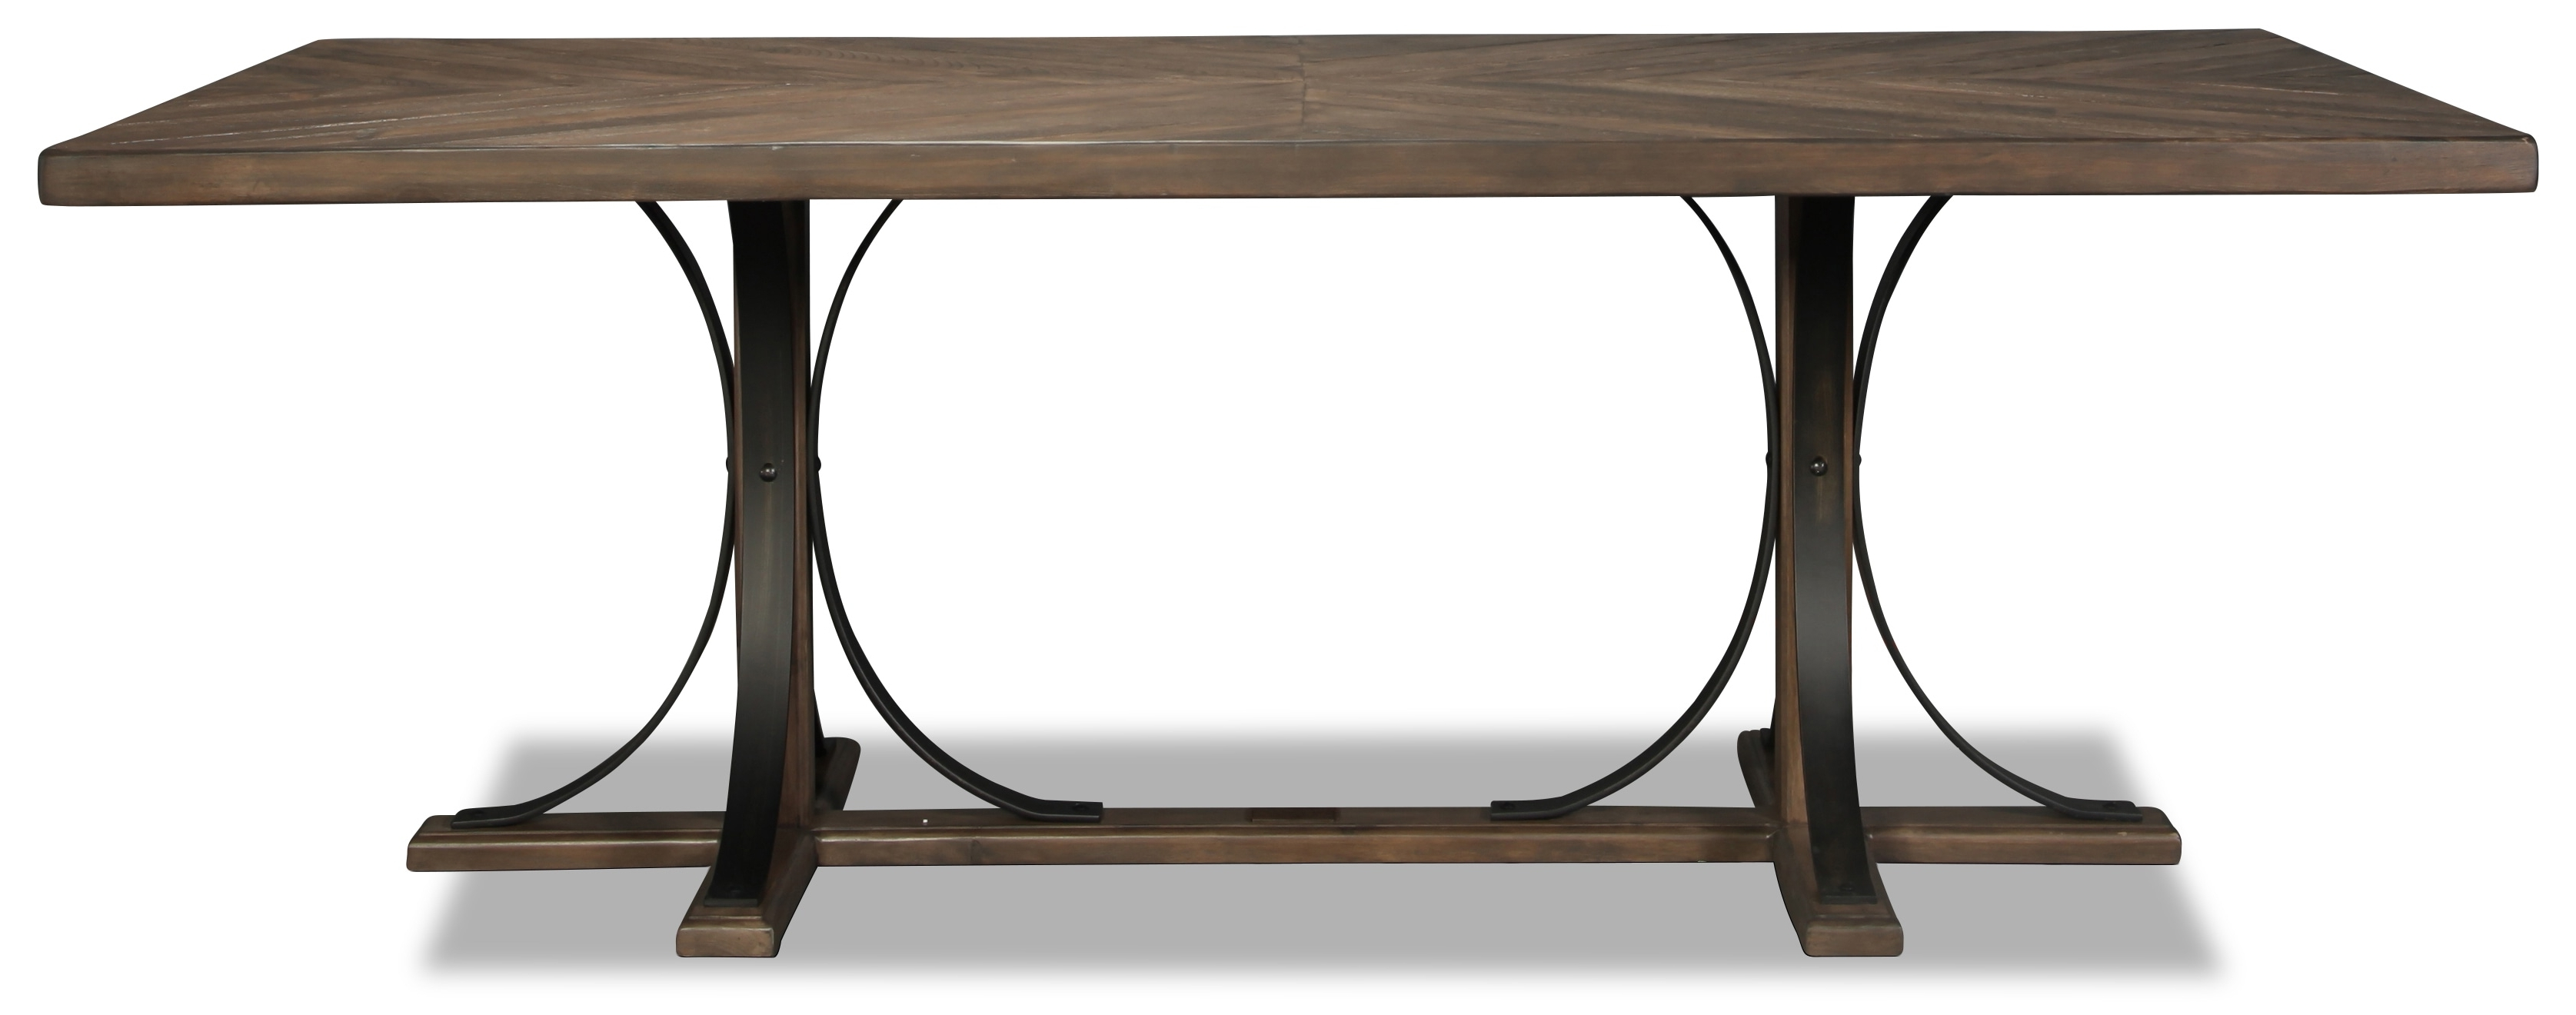 Widely Used Magnolia Home Ellipse Cocktail Tables By Joanna Gaines Within Magnolia Home Traditional Iron Trestle Table (View 12 of 20)